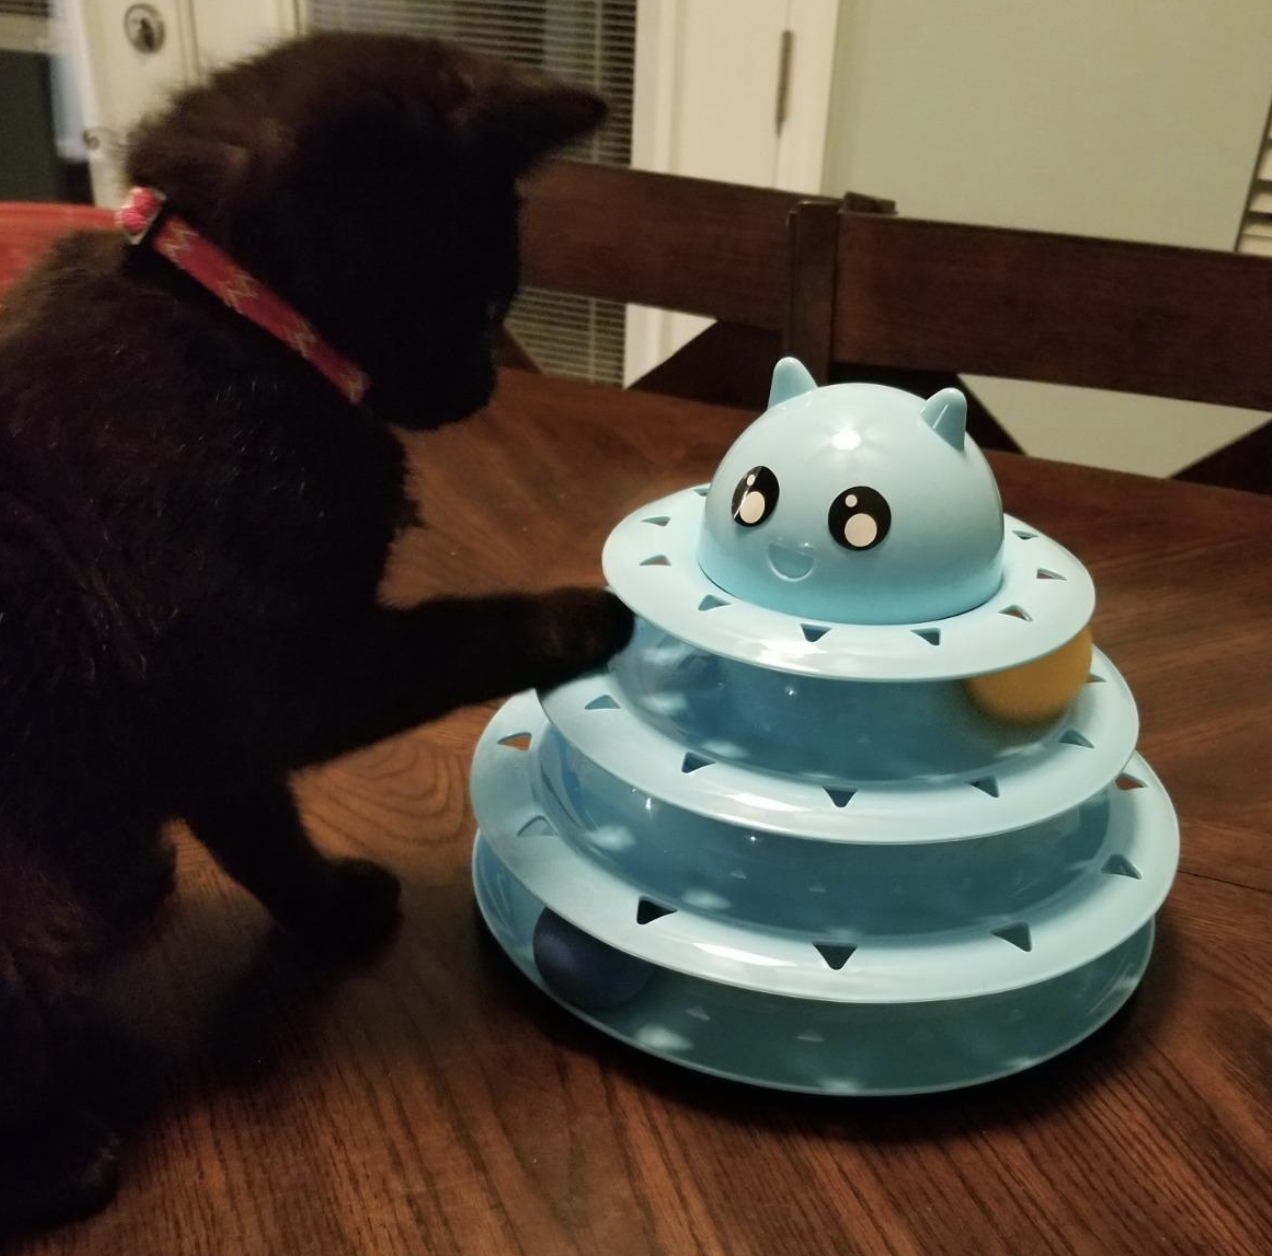 A black kitten sitting on a table, playing with a three-tiered ball roller toy